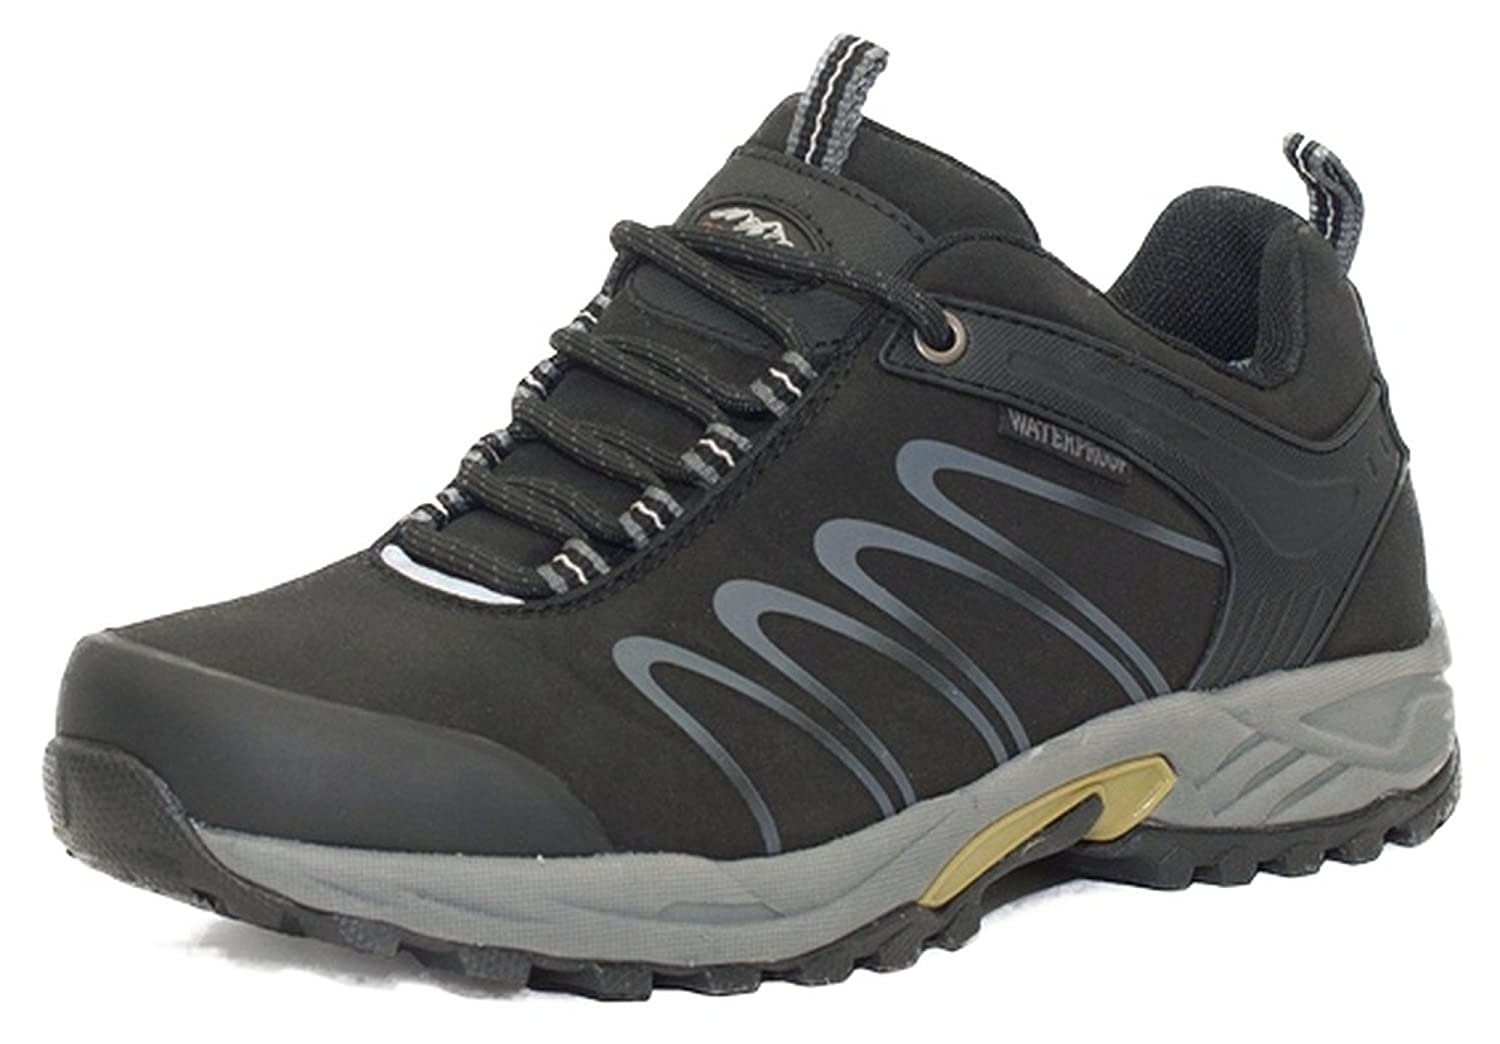 ALPINECROWN Trekkingschuhe Wanderschuhe Model Men Cross Trail, Schwarz, EU 42